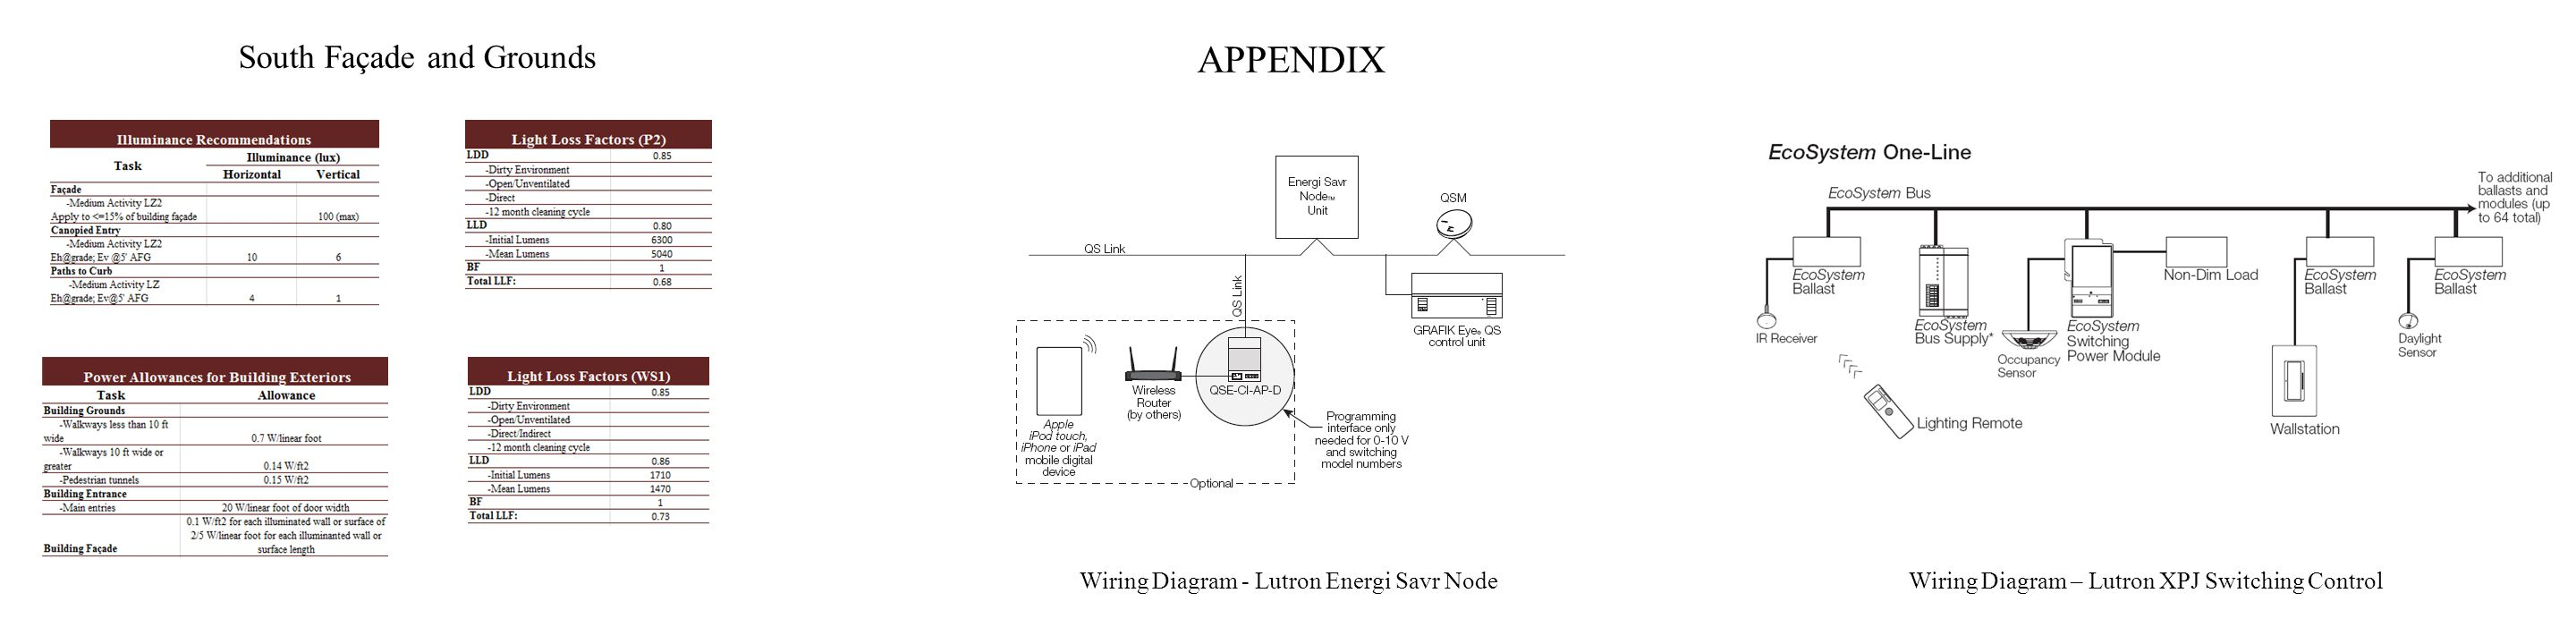 South Façade and Grounds Wiring Diagram - Lutron Energi Savr NodeWiring Diagram – Lutron XPJ Switching Control APPENDIX